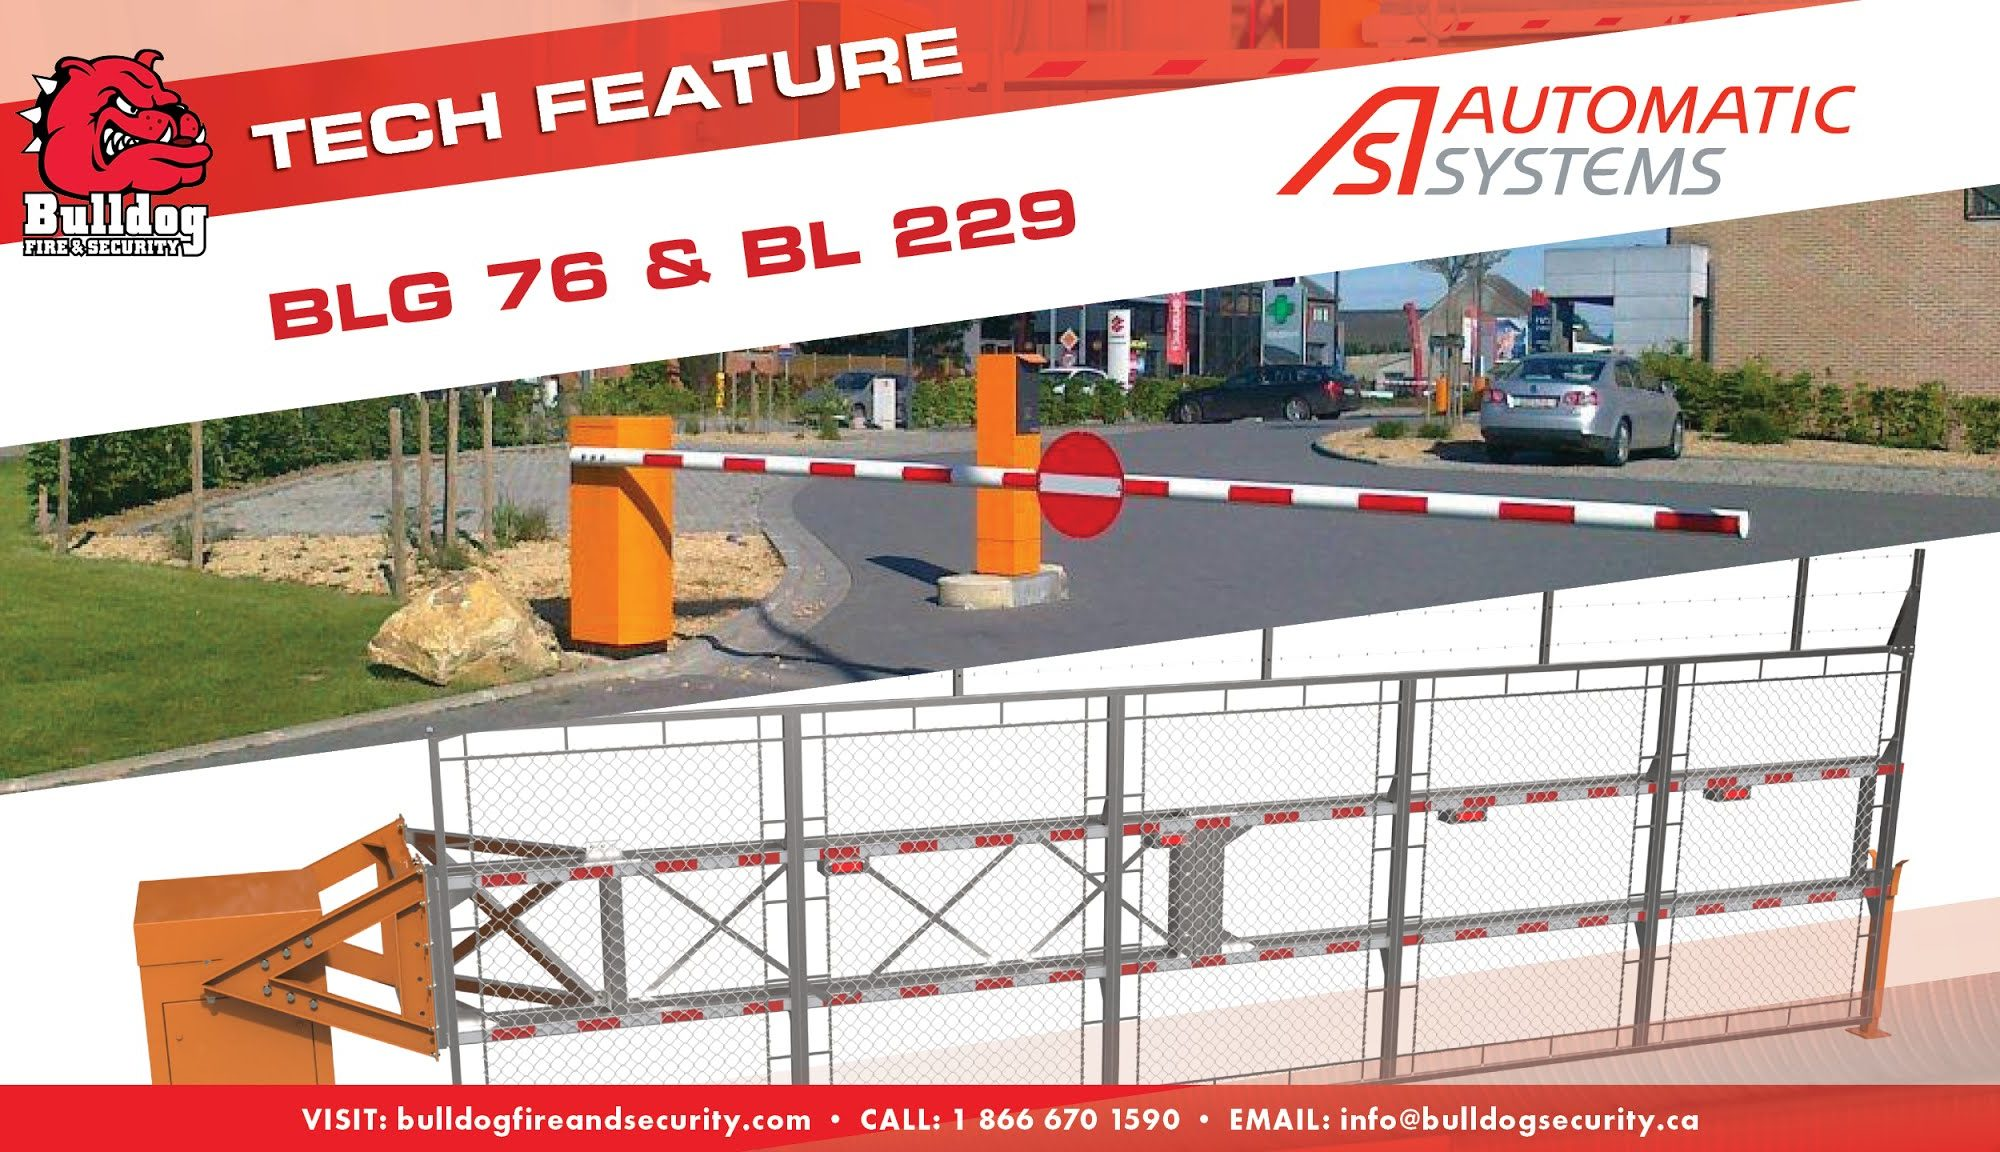 tech feature automatic systems bl 229 and blg 76 security gates